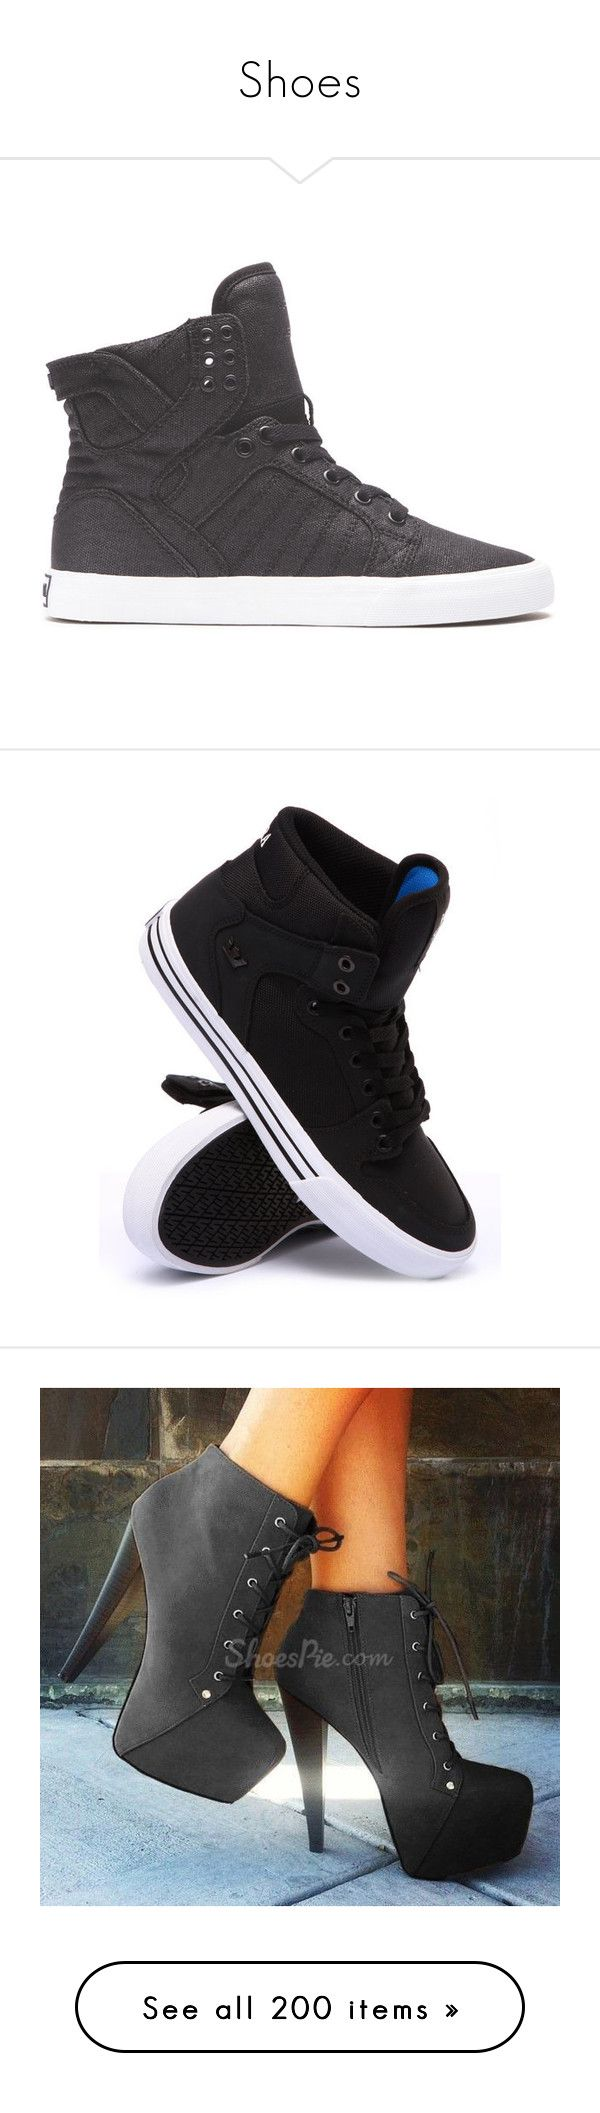 """""""Shoes"""" by looking-fly ❤ liked on Polyvore featuring shoes, black, black shoes, black high tops, supra footwear, high top shoes, kohl shoes, sneakers, sapatos e supra shoes"""